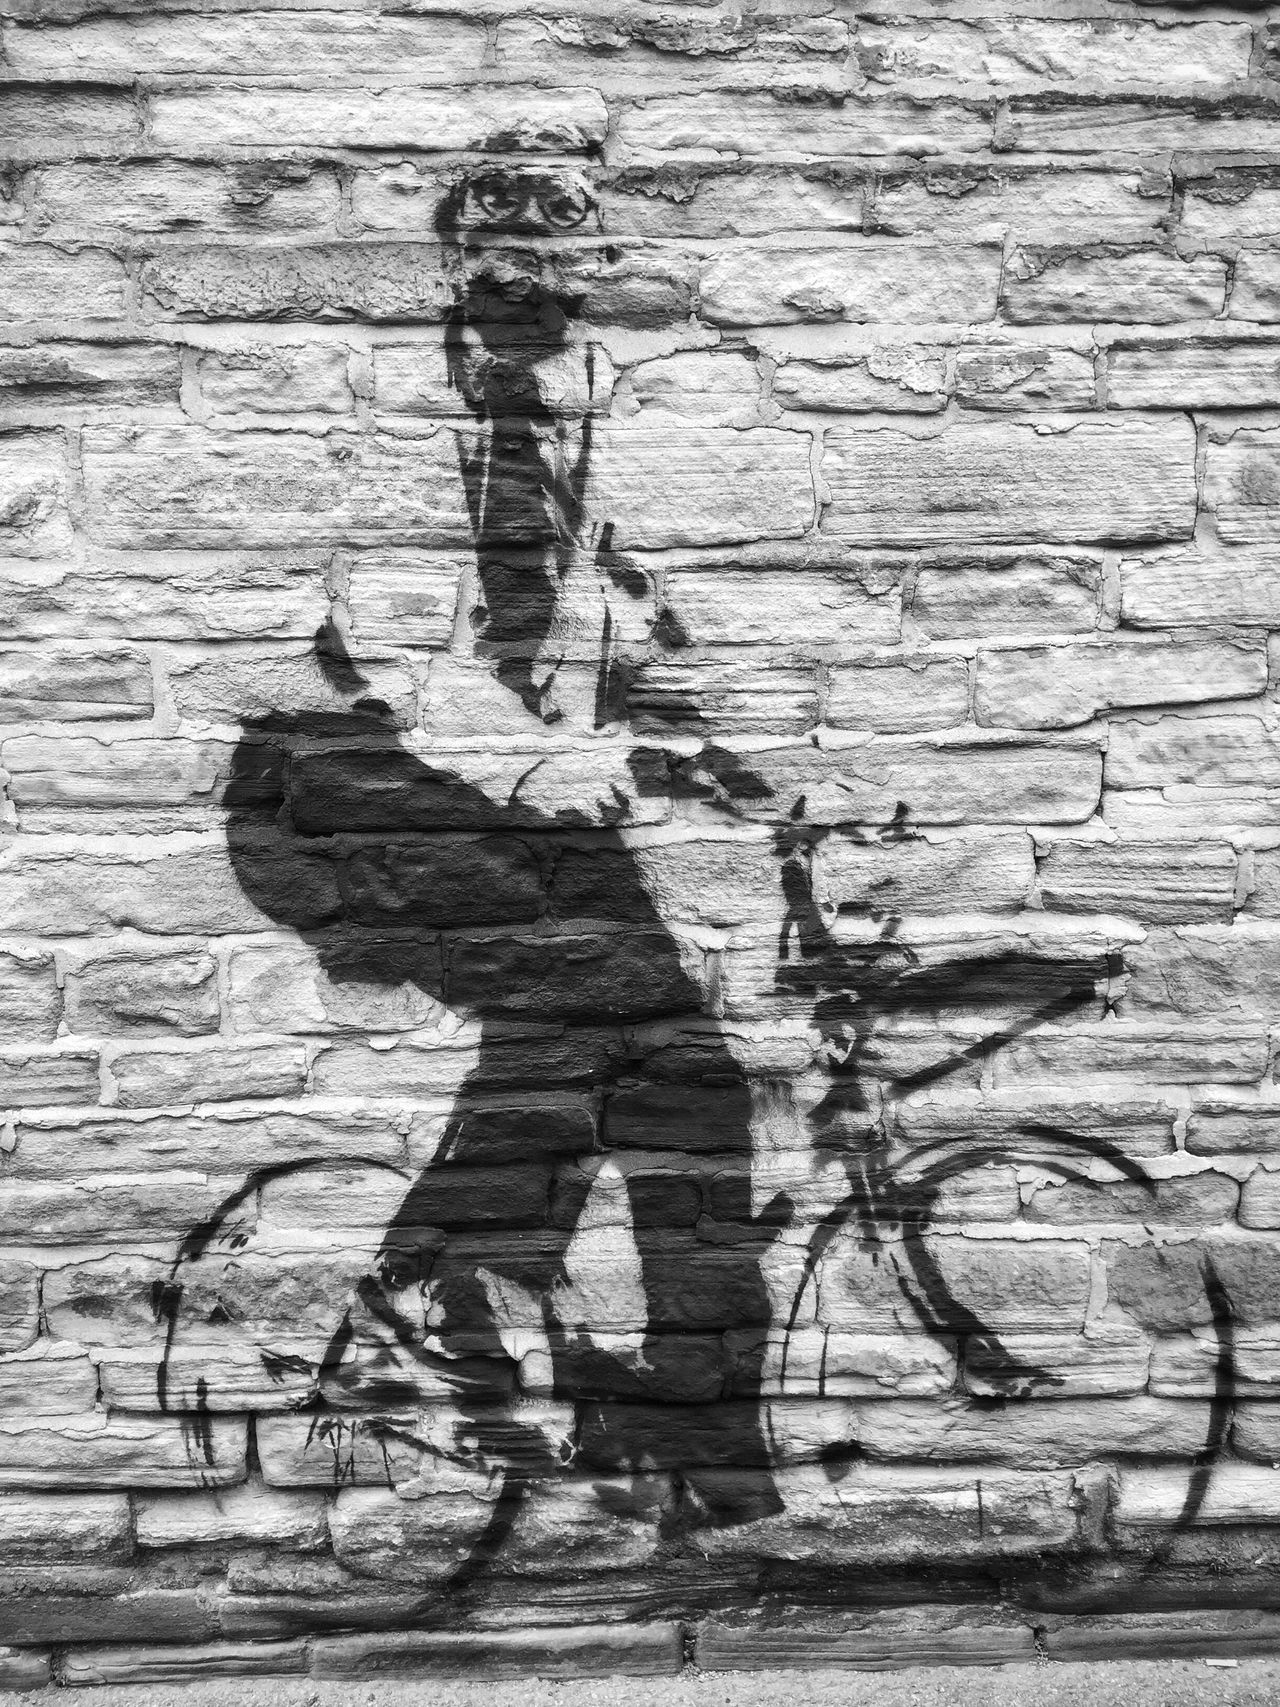 Brick Wall Male Figure Cycling Bike One Person Full Length Lifestyles Outdoors Leisure Activity Day Standing Architecture Adult People Davidhockney Hockney Artist Graffiti Streetphotography Streetart Stencil Tourdeyorkshire Bradford Blackandwhite Photography